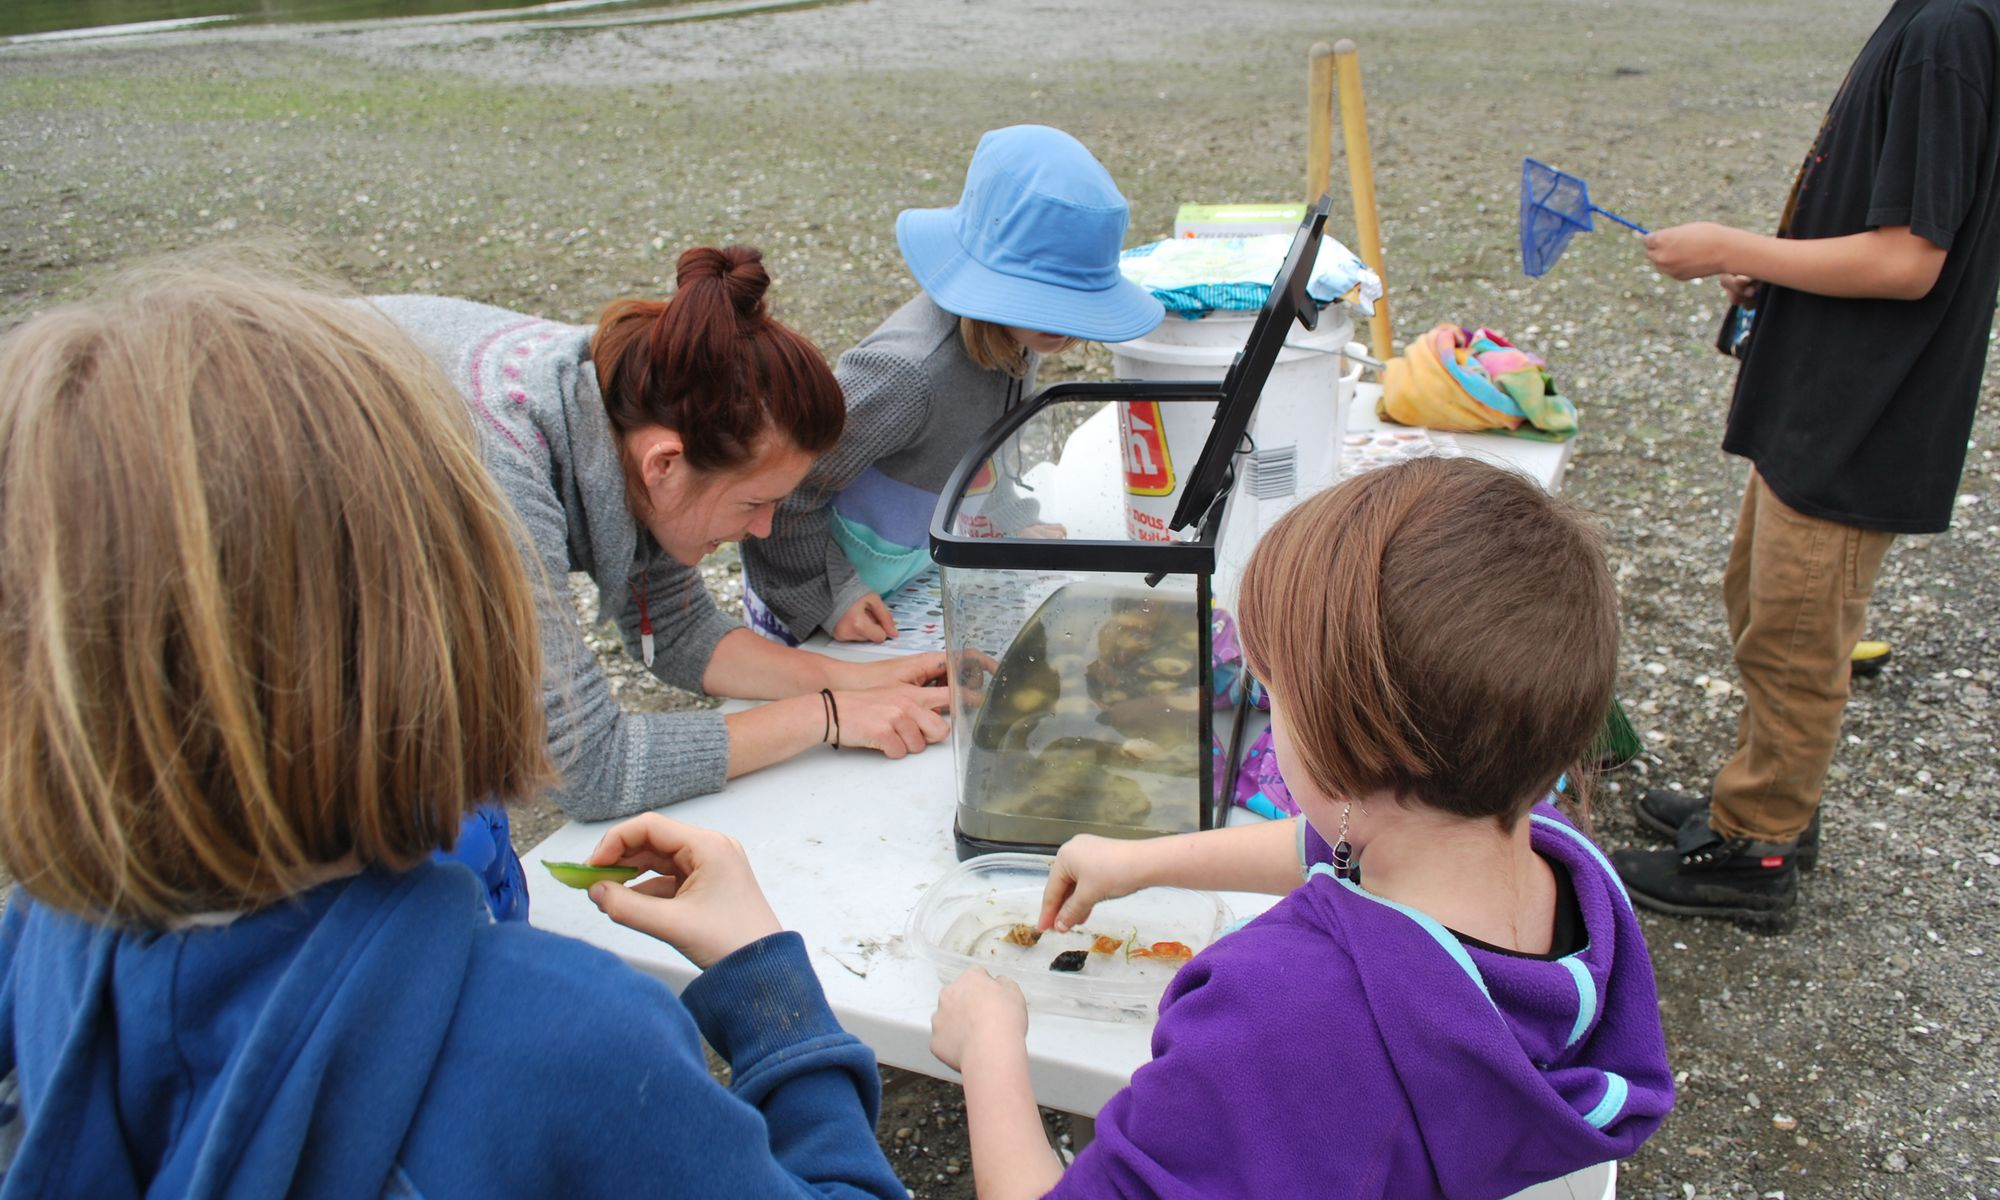 Elementary students observe ocean creatures in an aquarium at the beach.